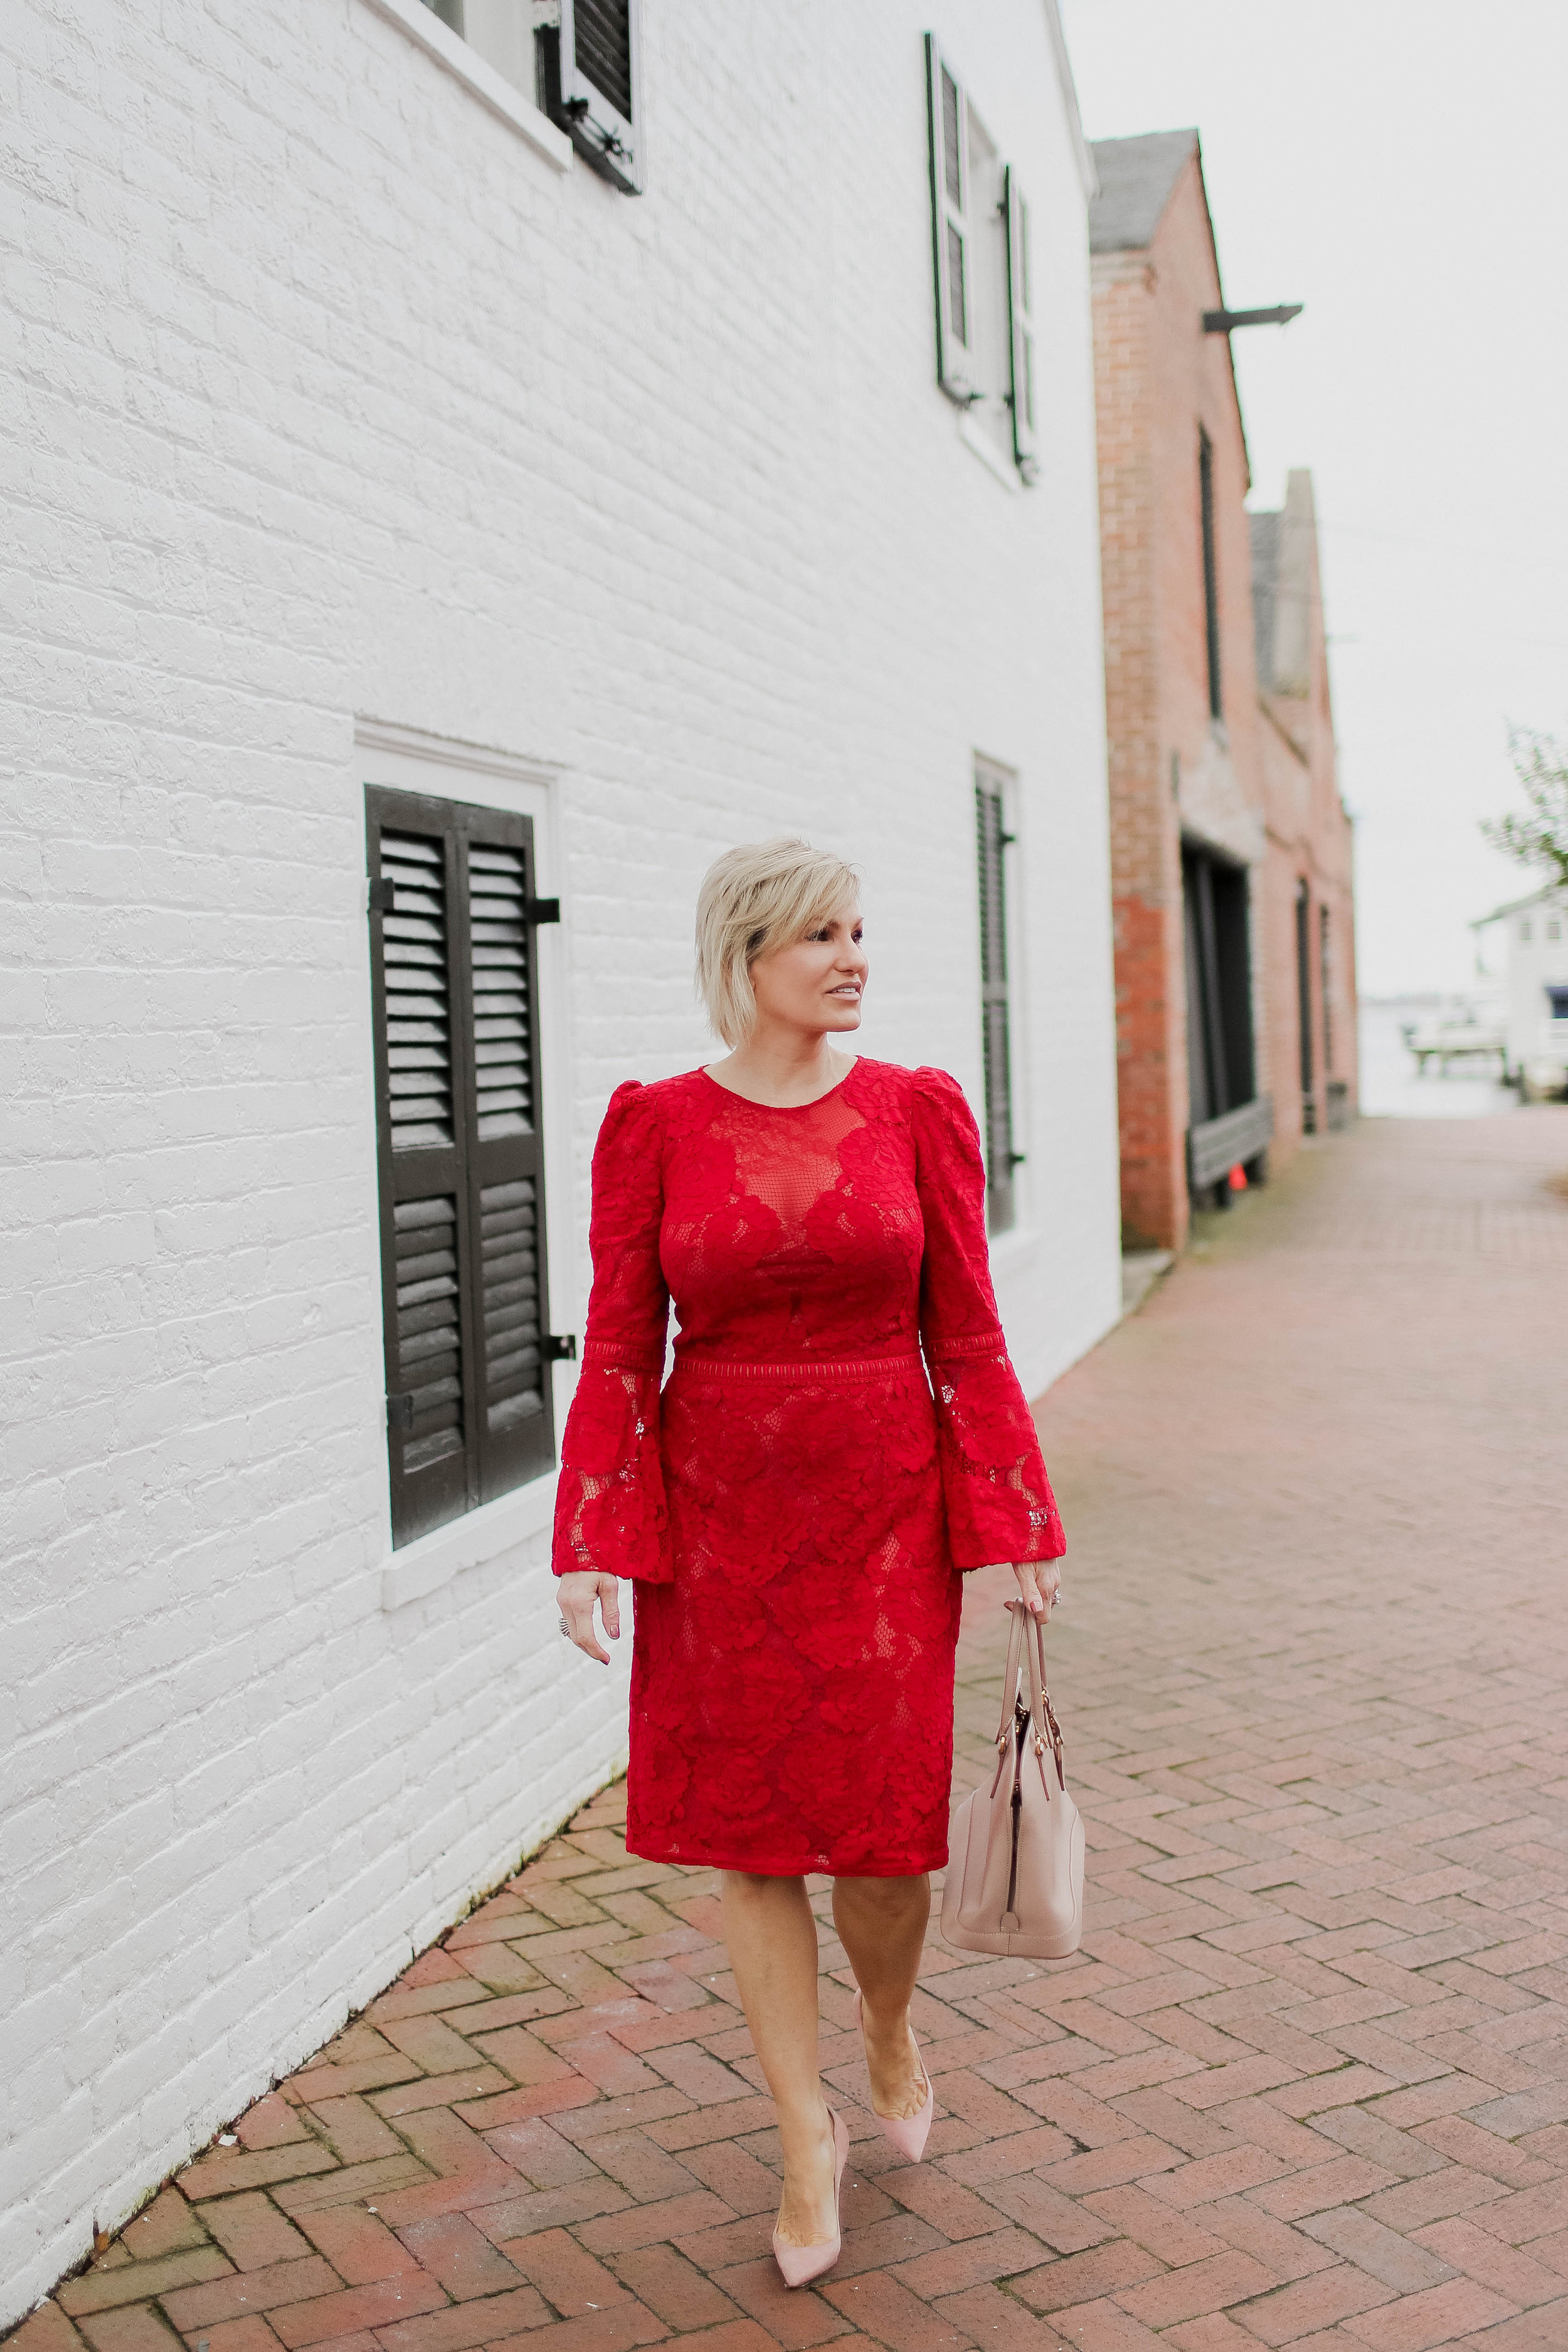 The soft lace and bell sleeves give this dress an ultra feminine look, making it the perfect dress for a Valentine's Day dinner. (Red dress:  here ) (Black dress:  here ) Complete the look: Christian Louboutin:  here , Similar look:  here . Handbag: Prada:  here , Similar look:  here .